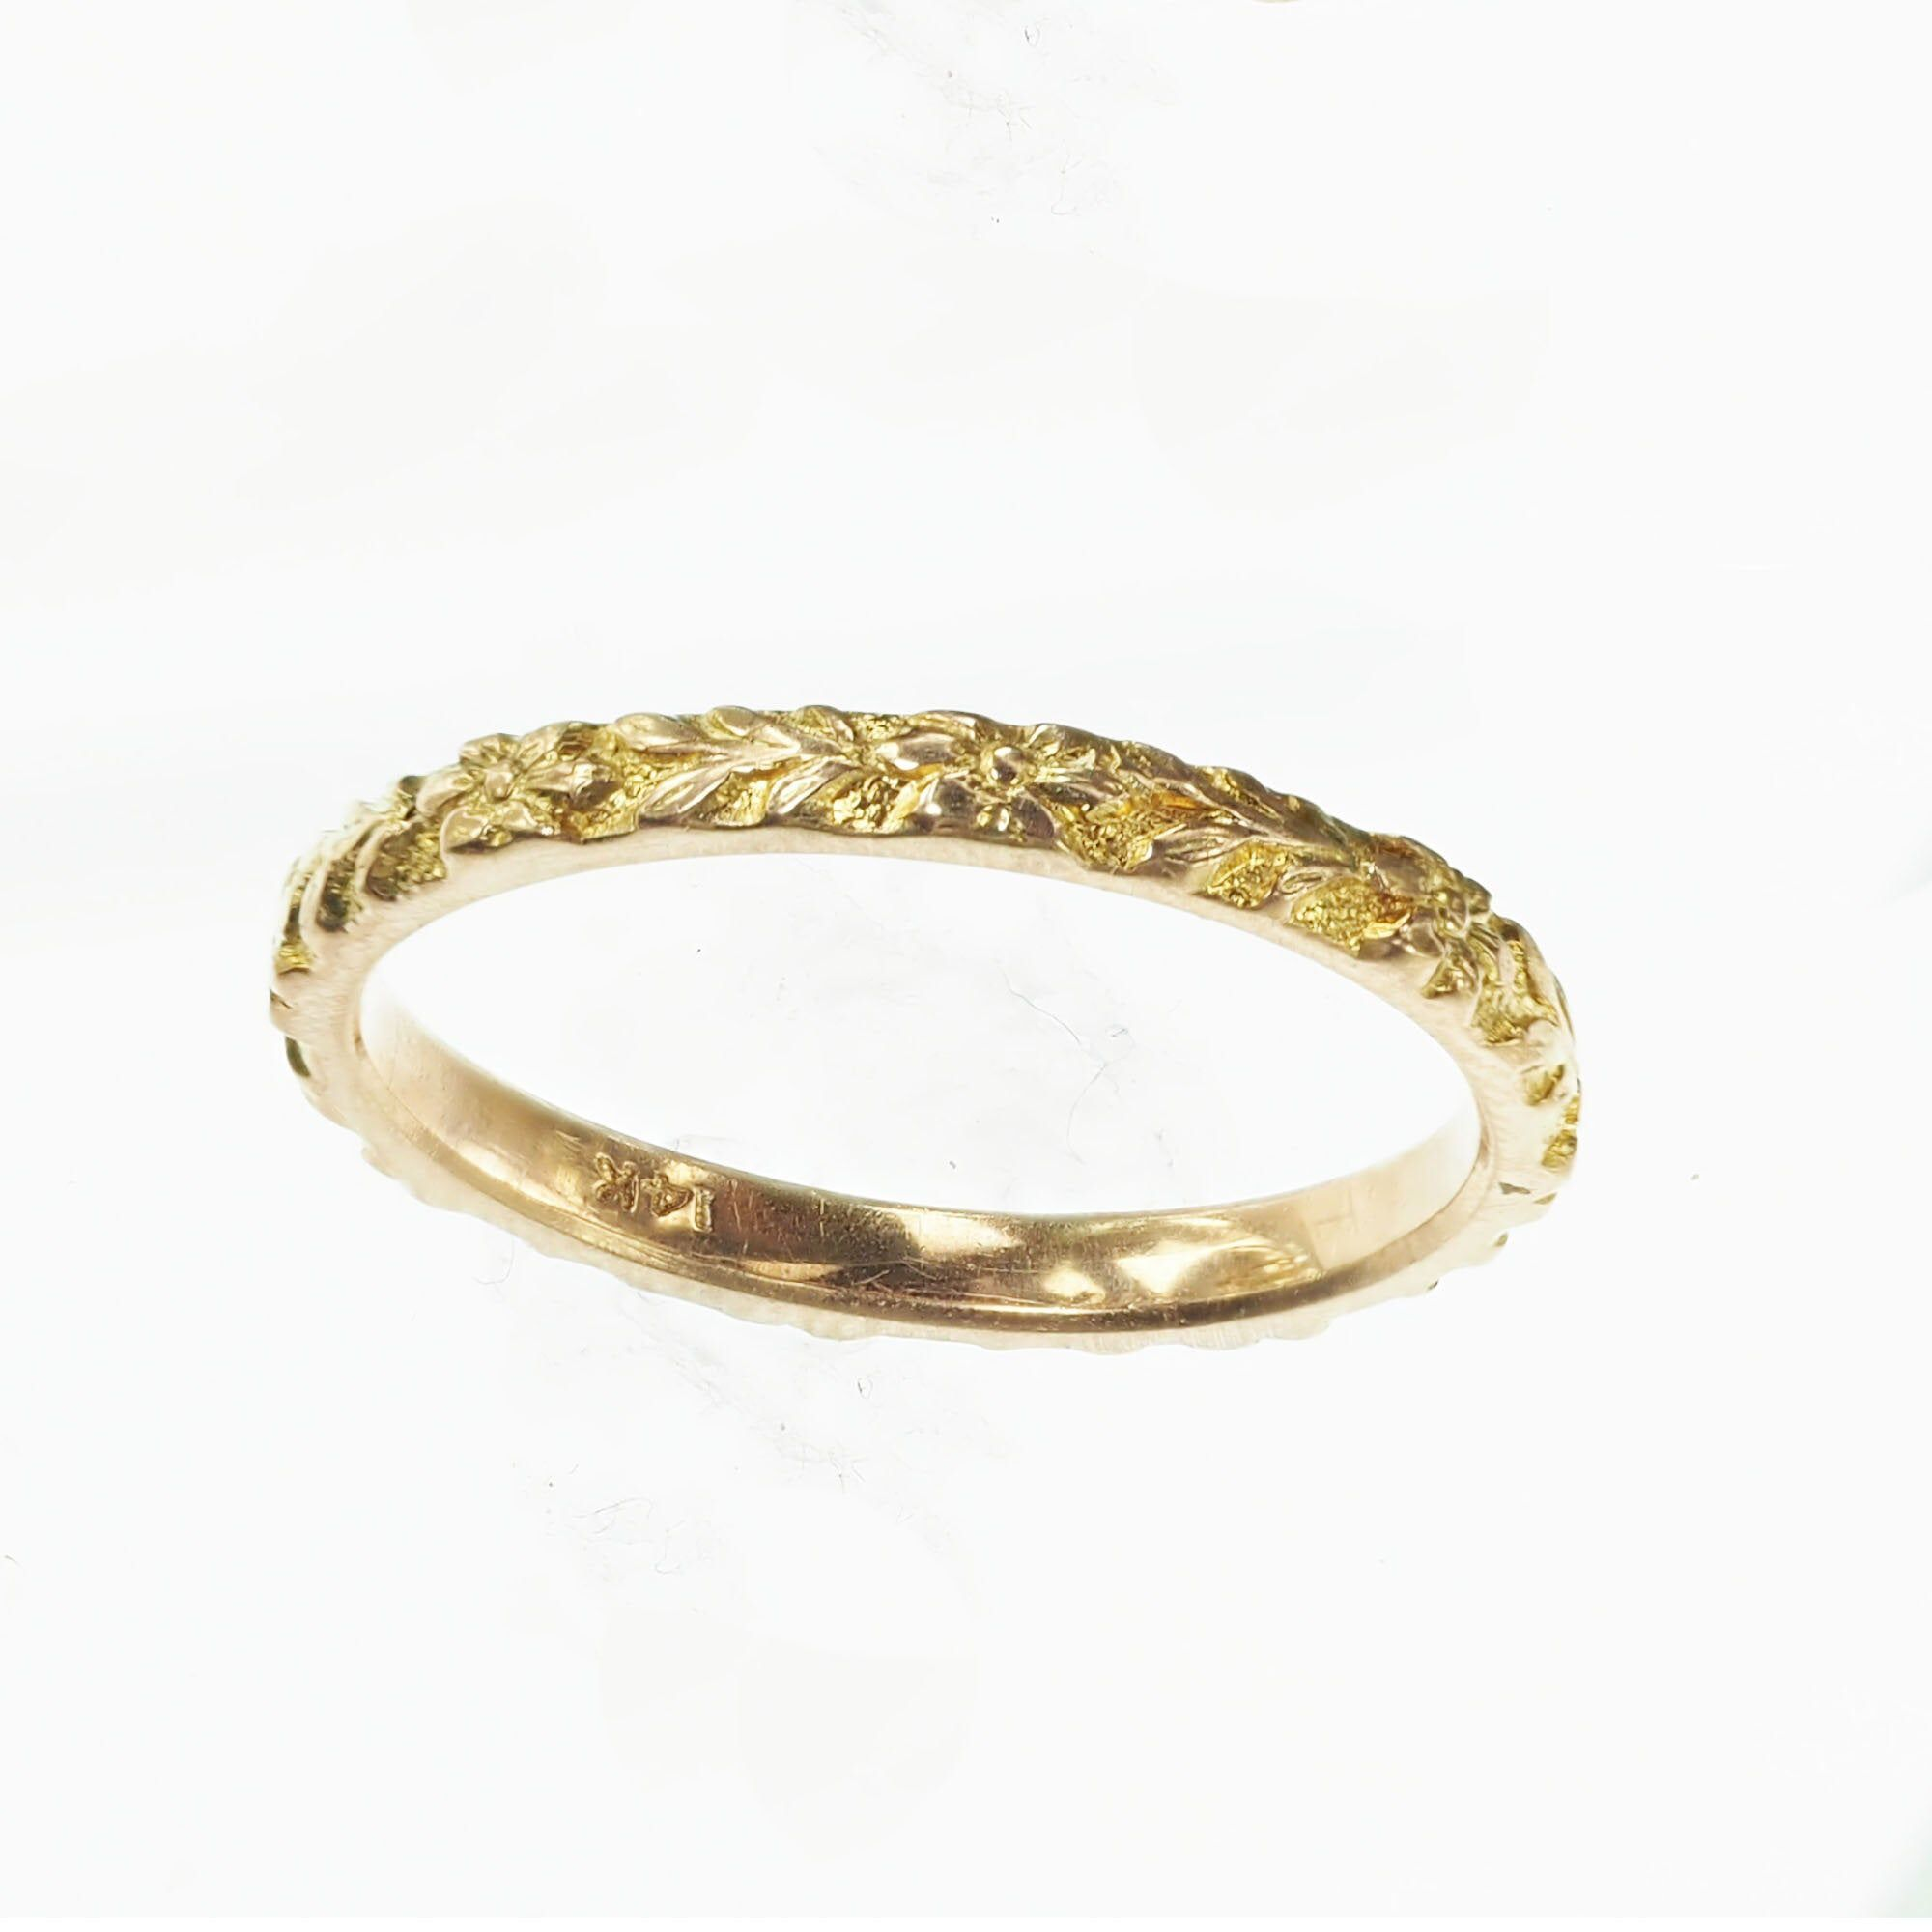 Vintage 1940s 14k Yellow Gold Engraved Orange Blossom Stackable Band